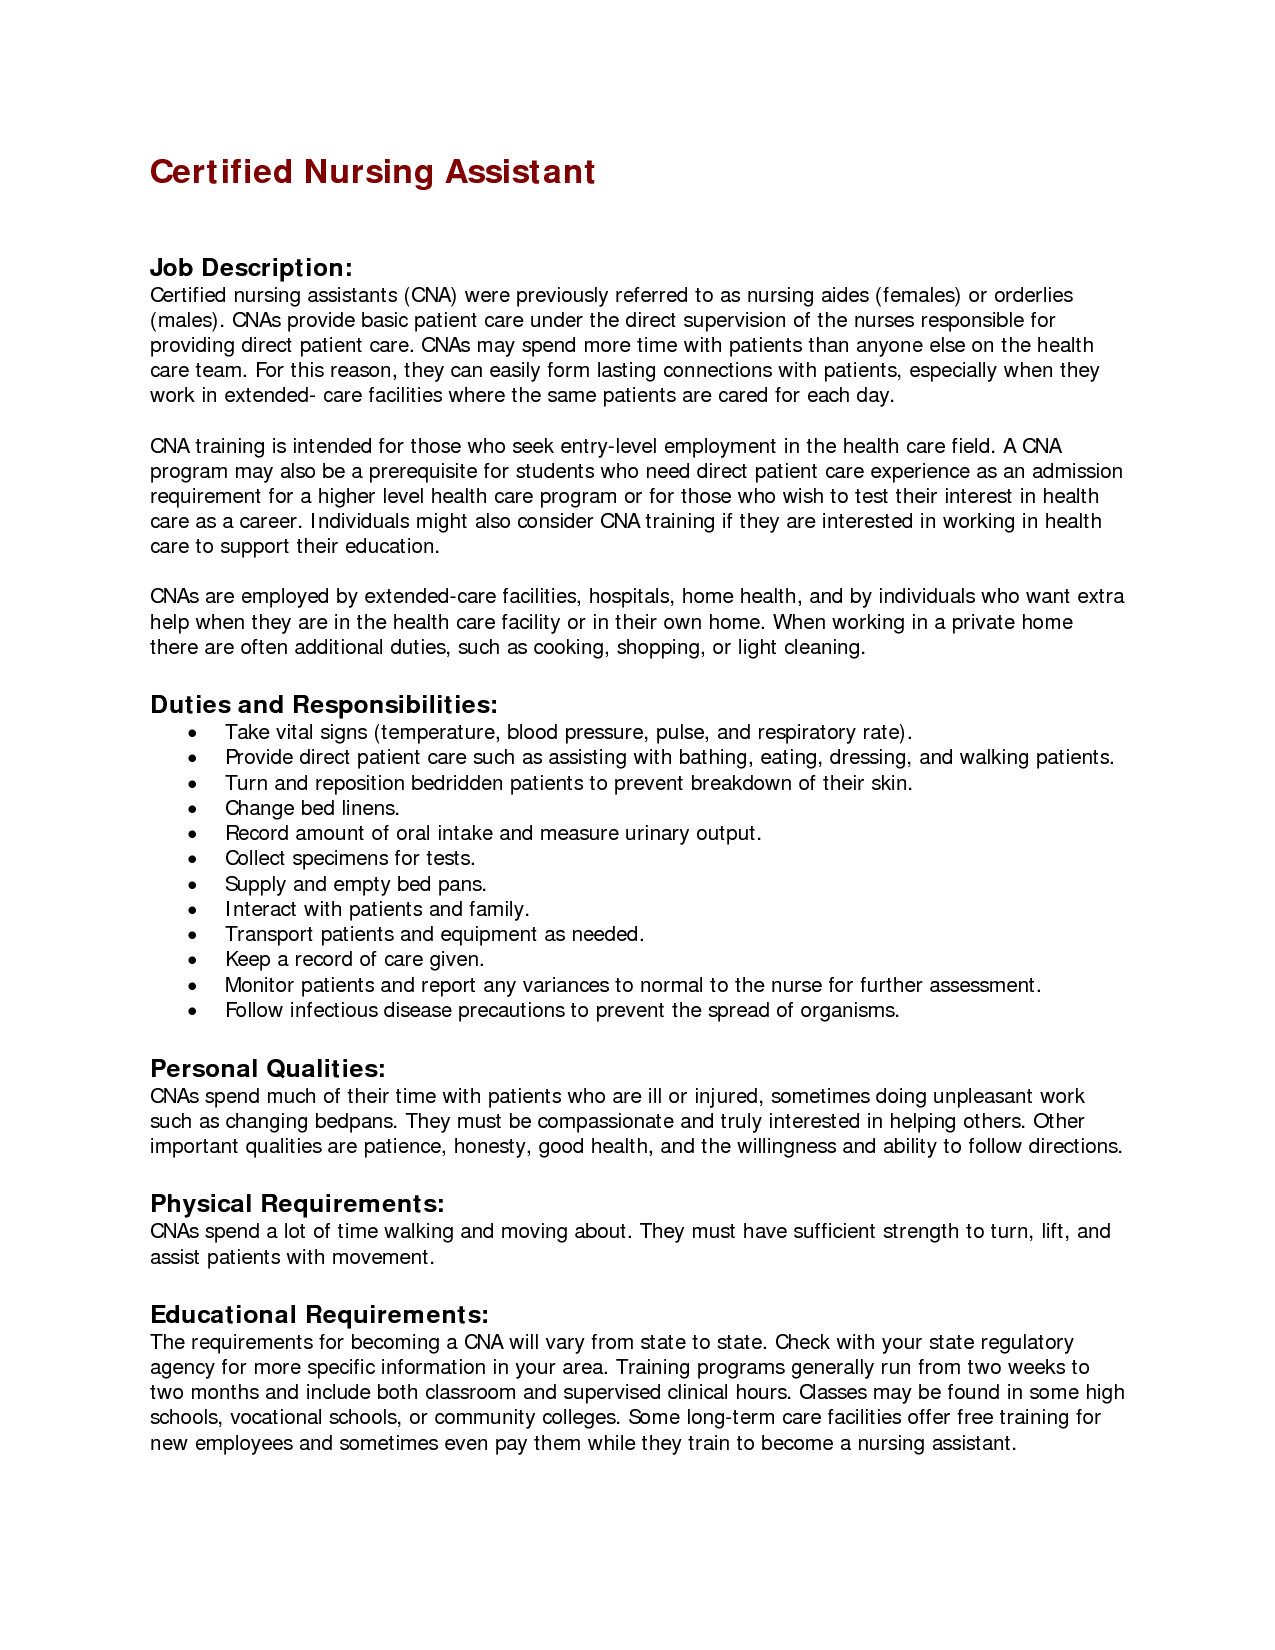 professional nursing assistant resume example